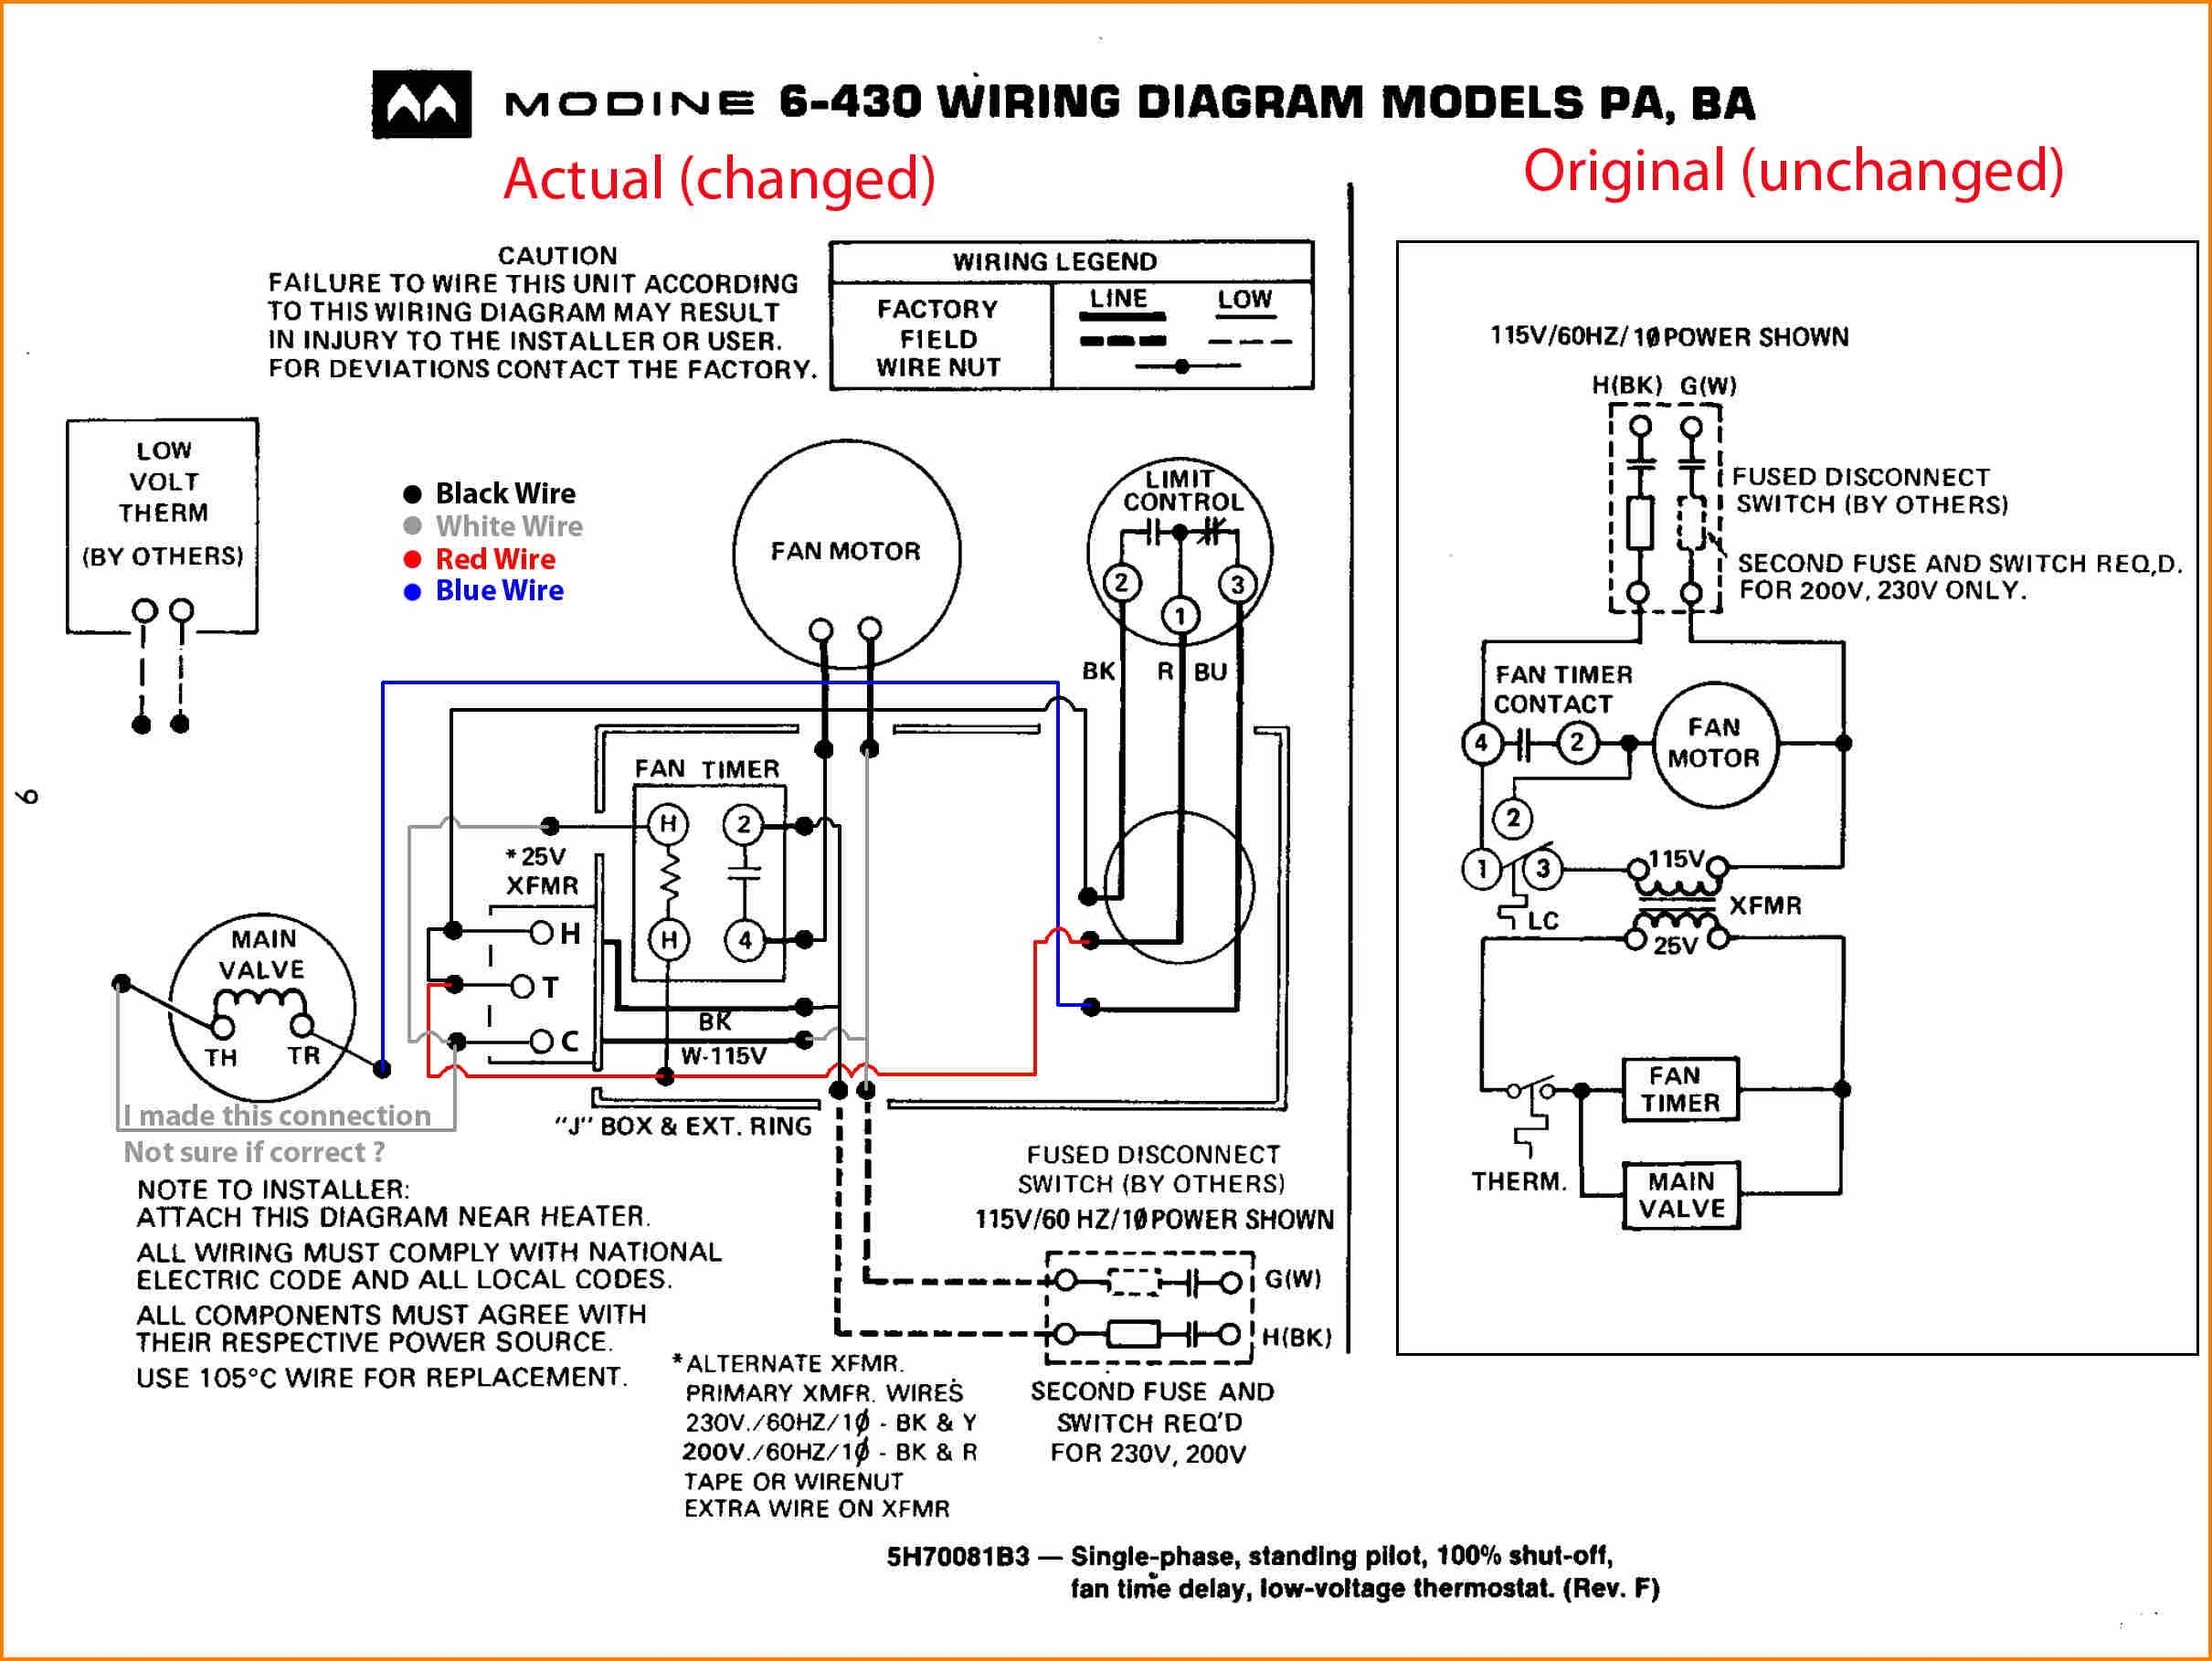 furnace motor schematic